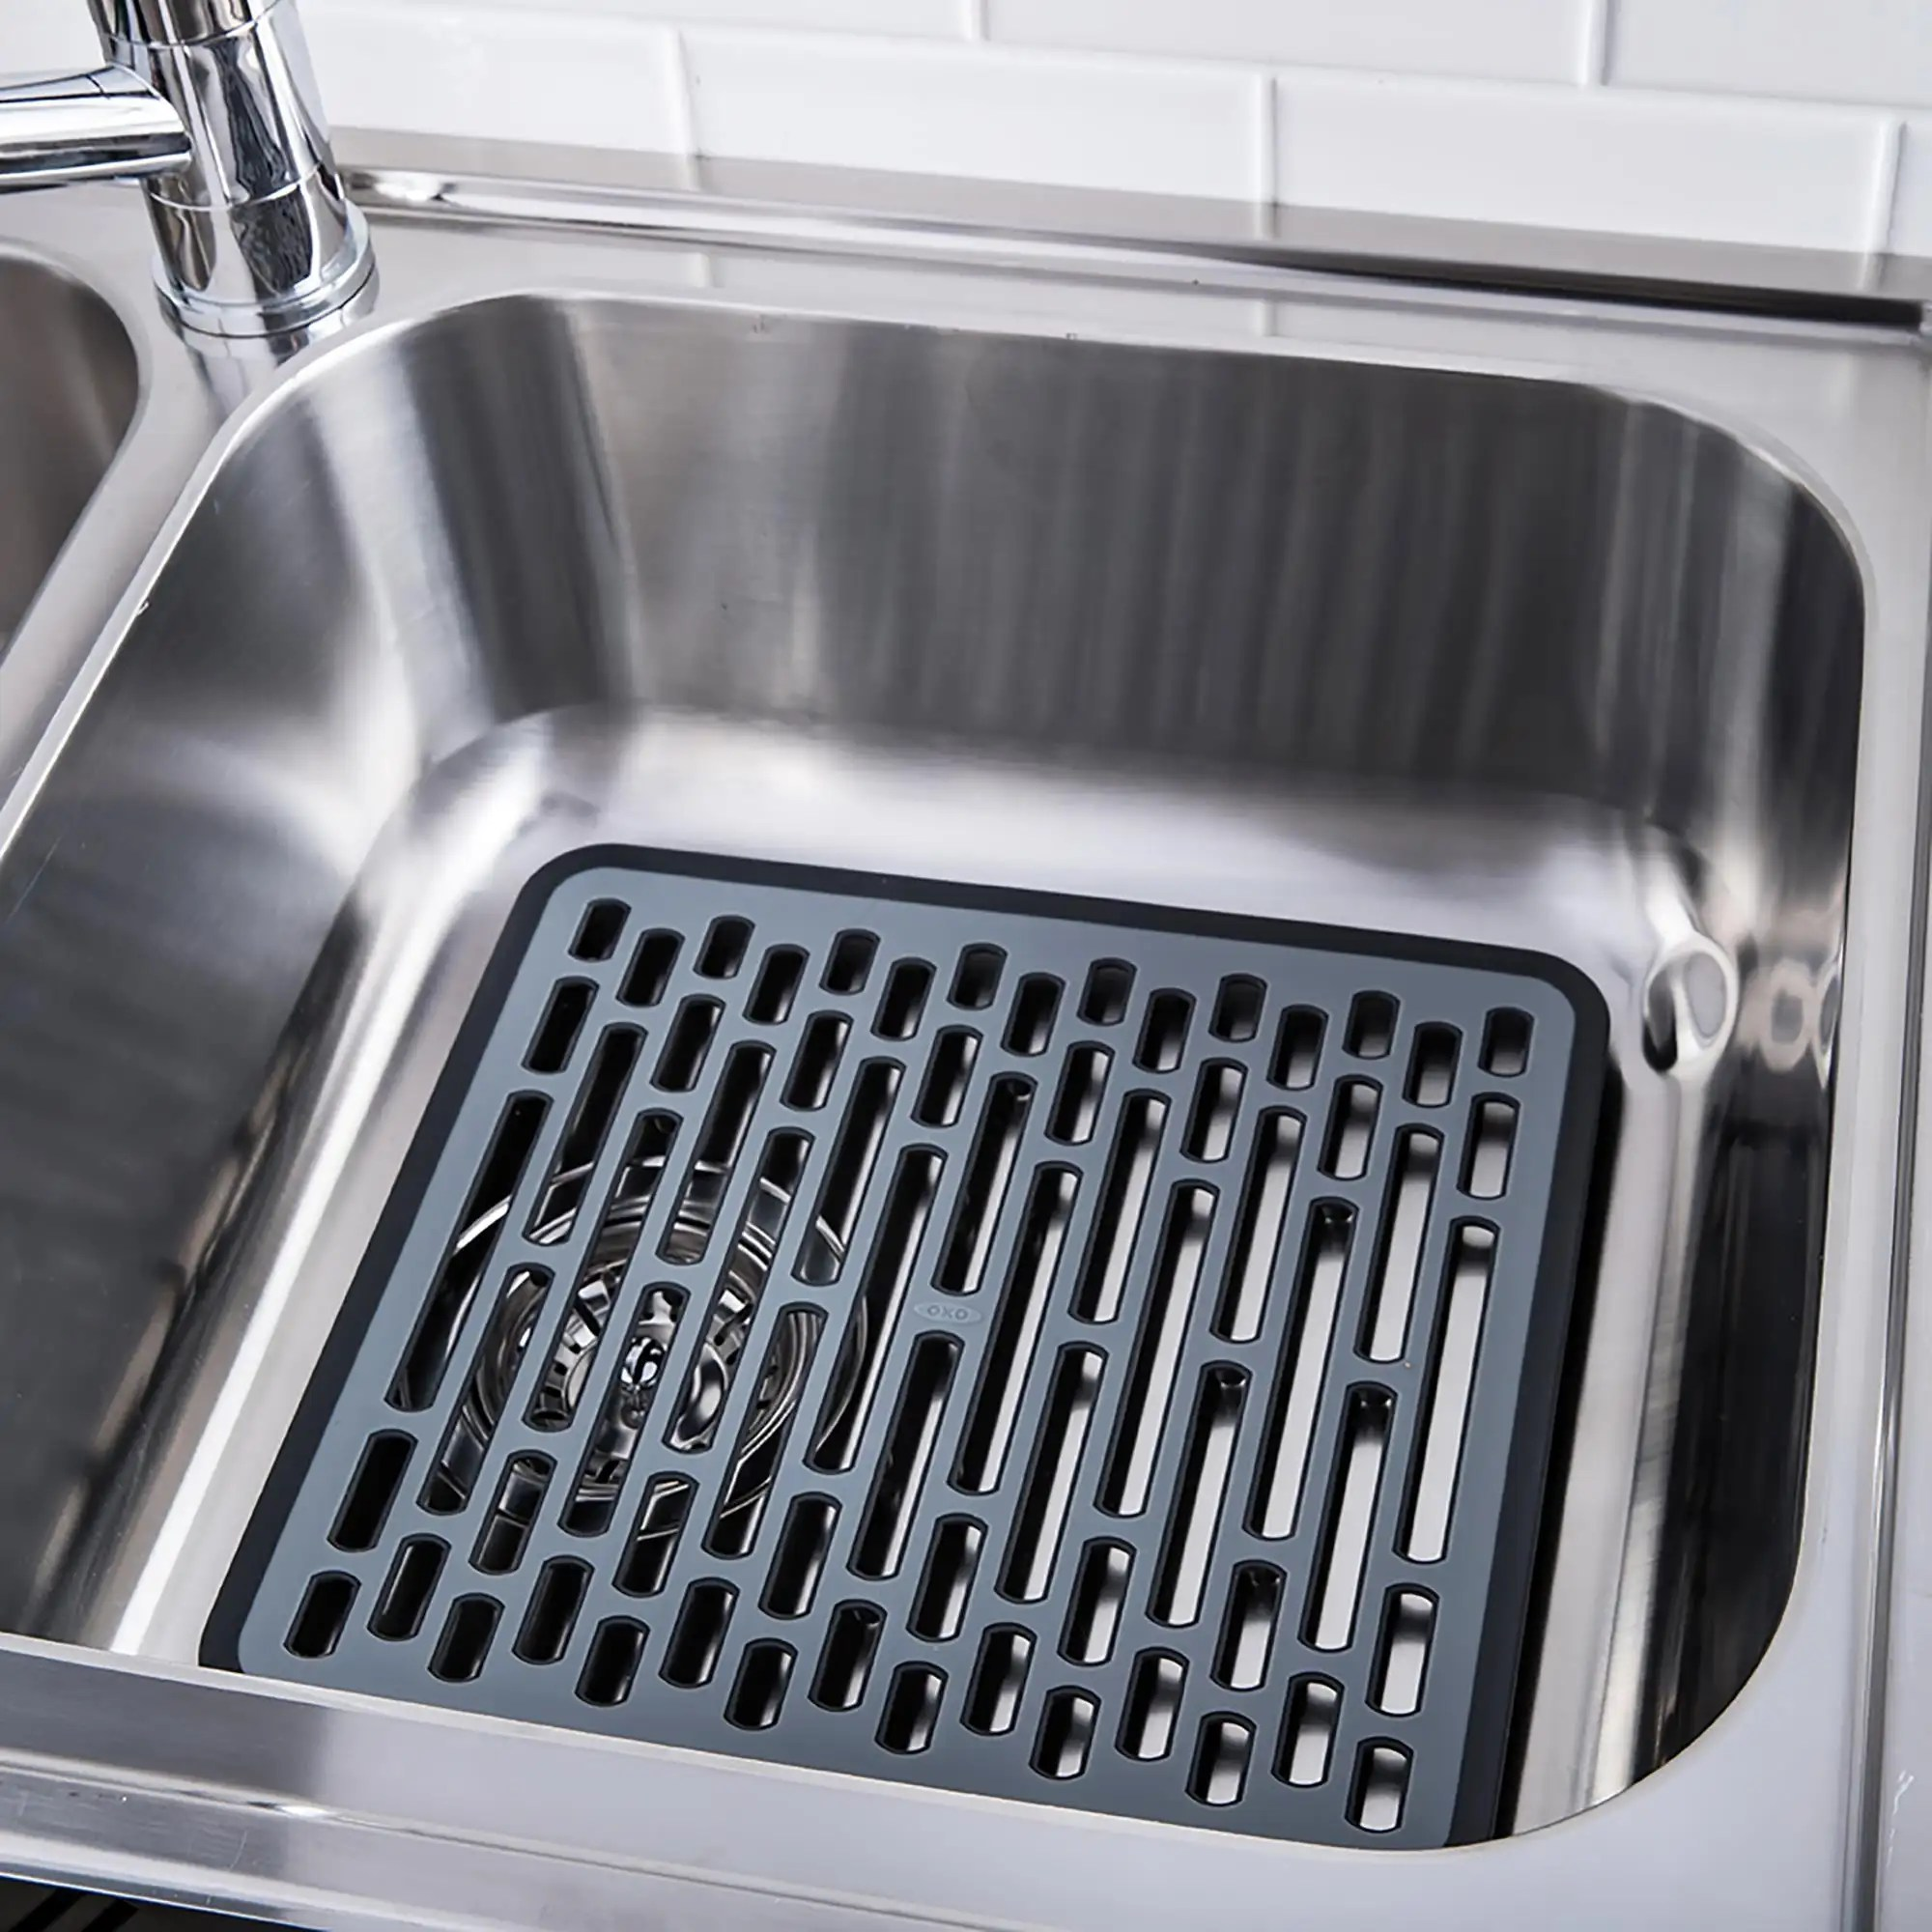 oxo good grips sink silicone sink mat small black grey